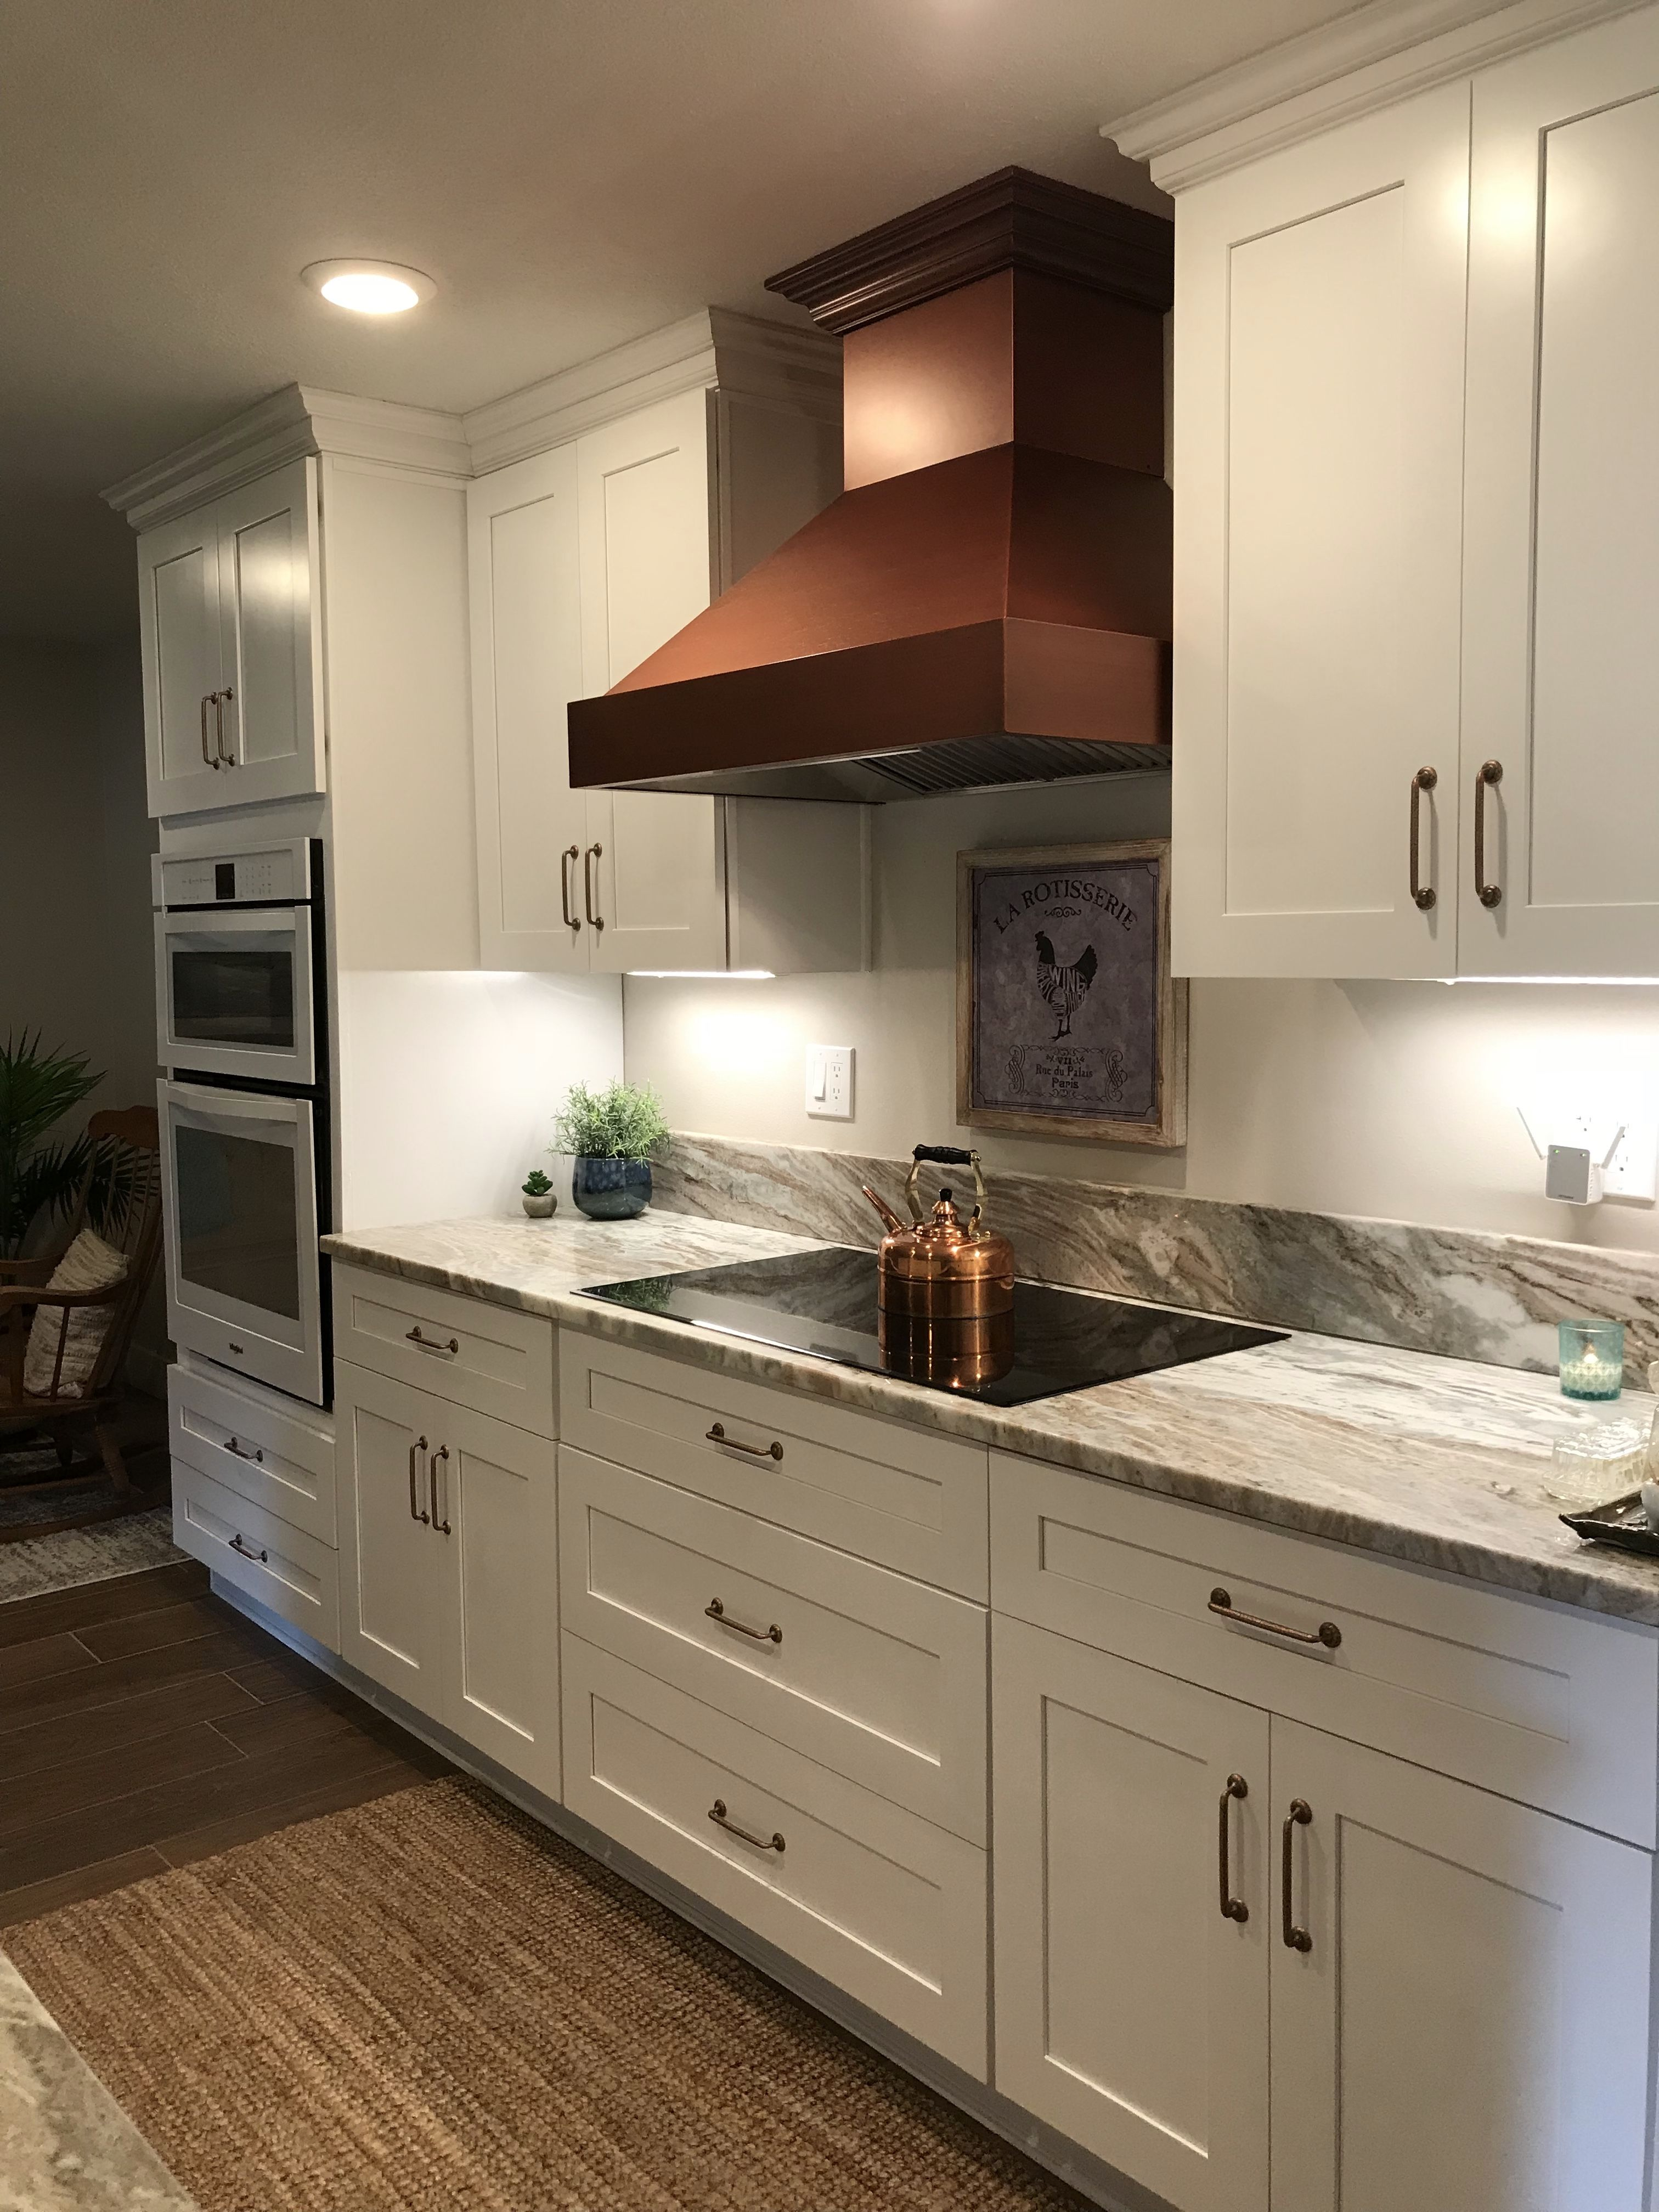 White kitchen with copper accents. (With images)   Kitchen ...